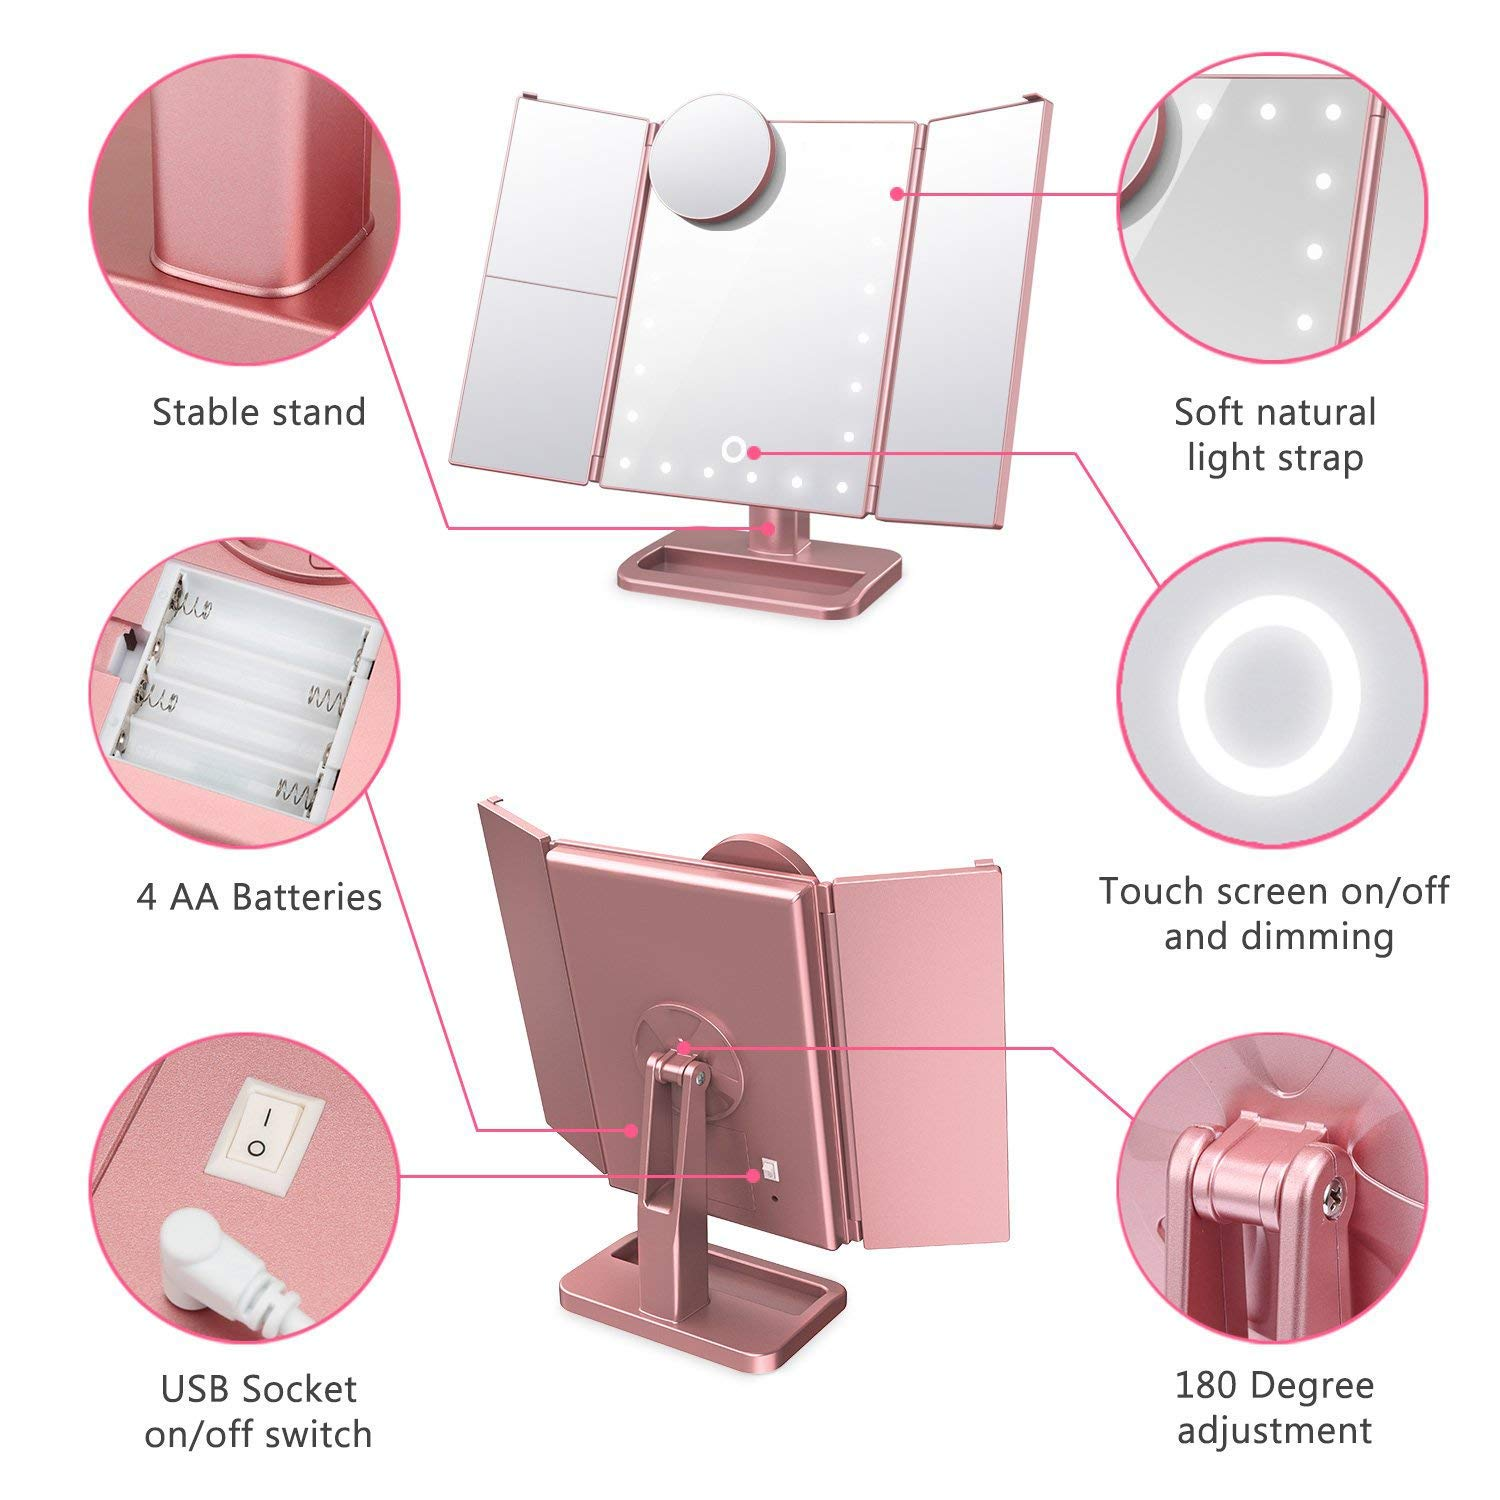 Hansong Lighted Vanity Mirror with 24 Lights, Tri-fold Illuminated Cosmetic Mirror with 1x/2x/3x/10x Magnification, LED Light Up Makeup Mirror with Touch Screen (Rose Gold)